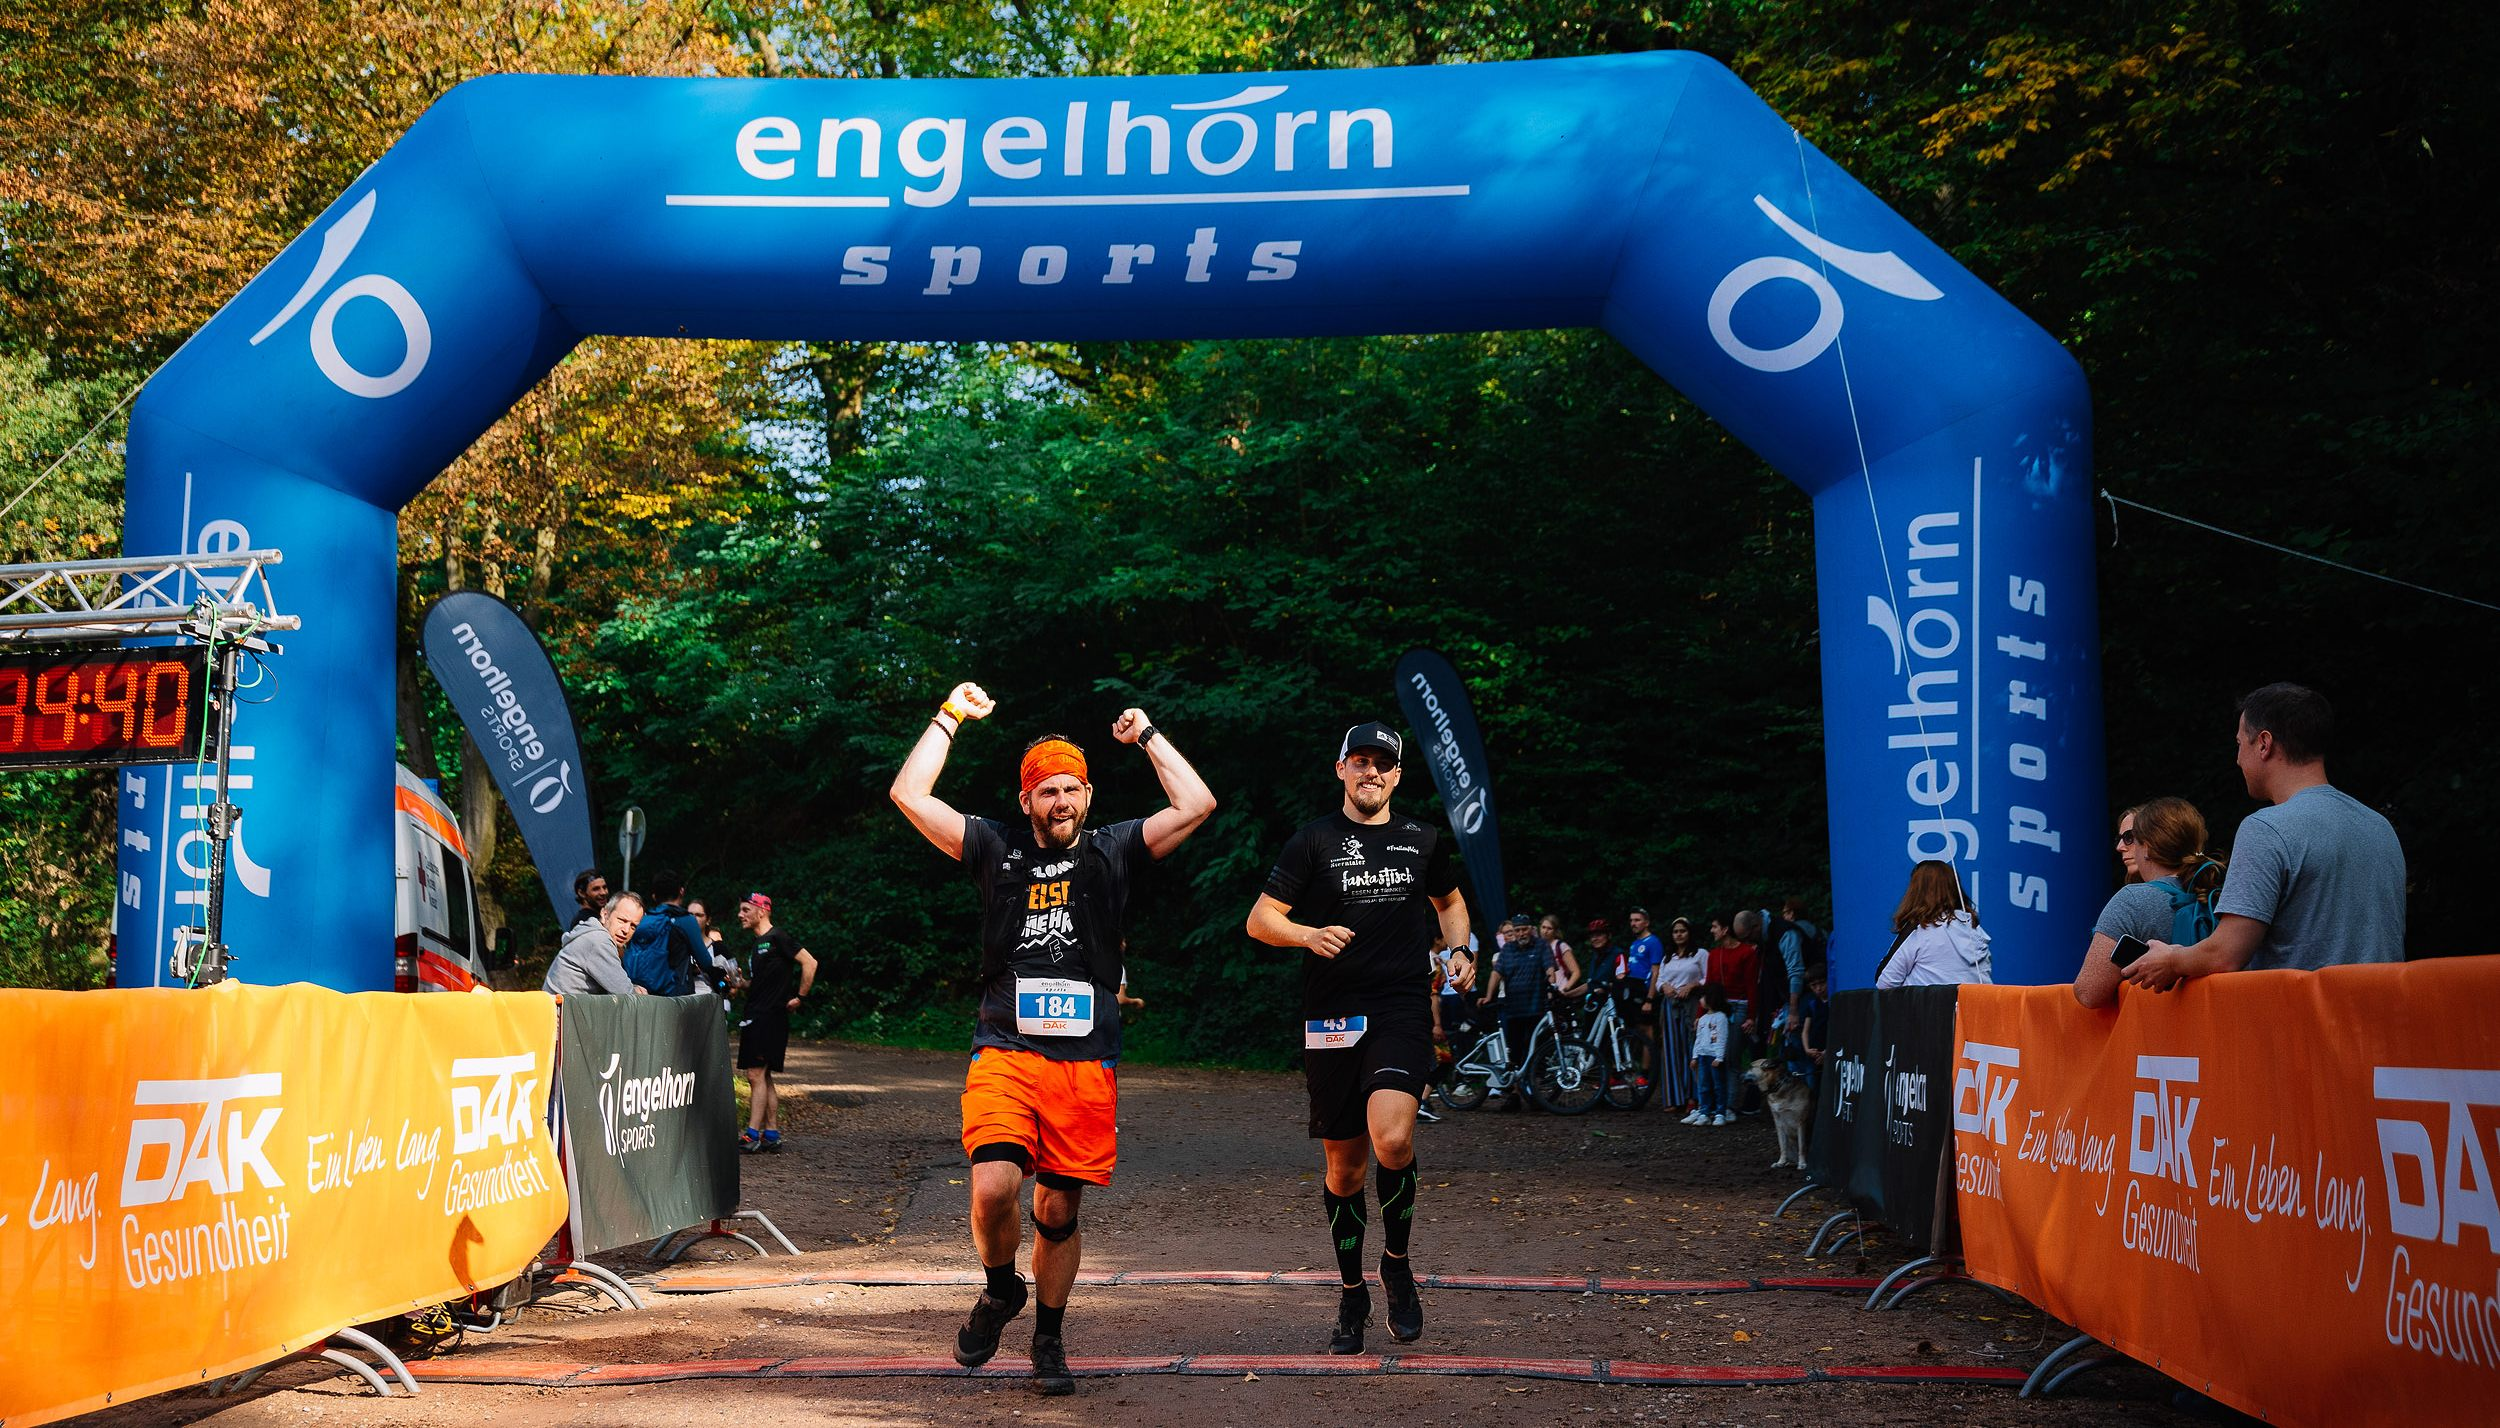 engelhorn sports Salomon Trailcup 2020 – alle Infos